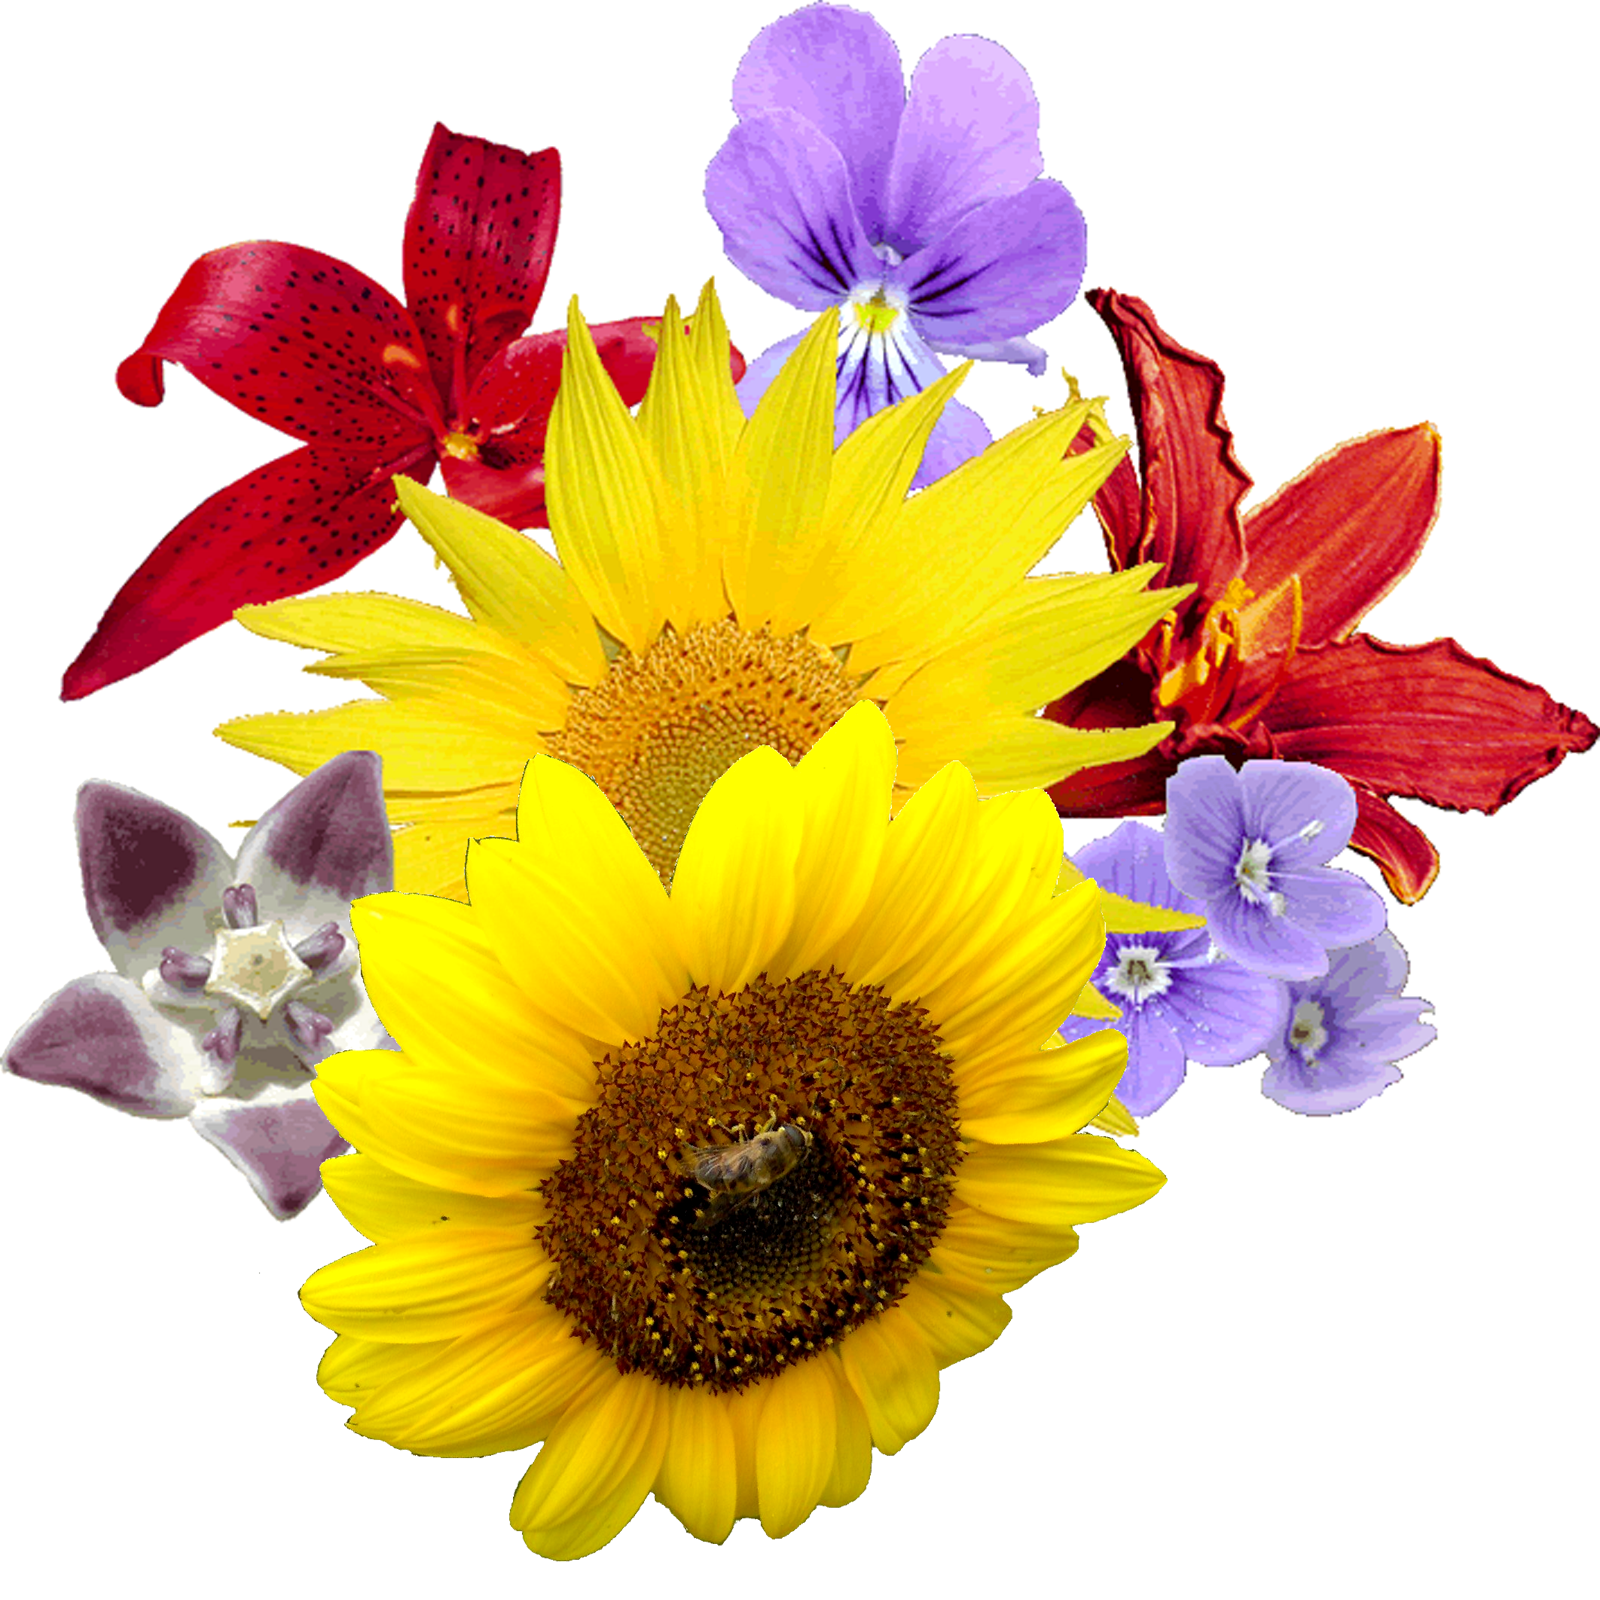 Flower image png. Flowers images clipart transparent